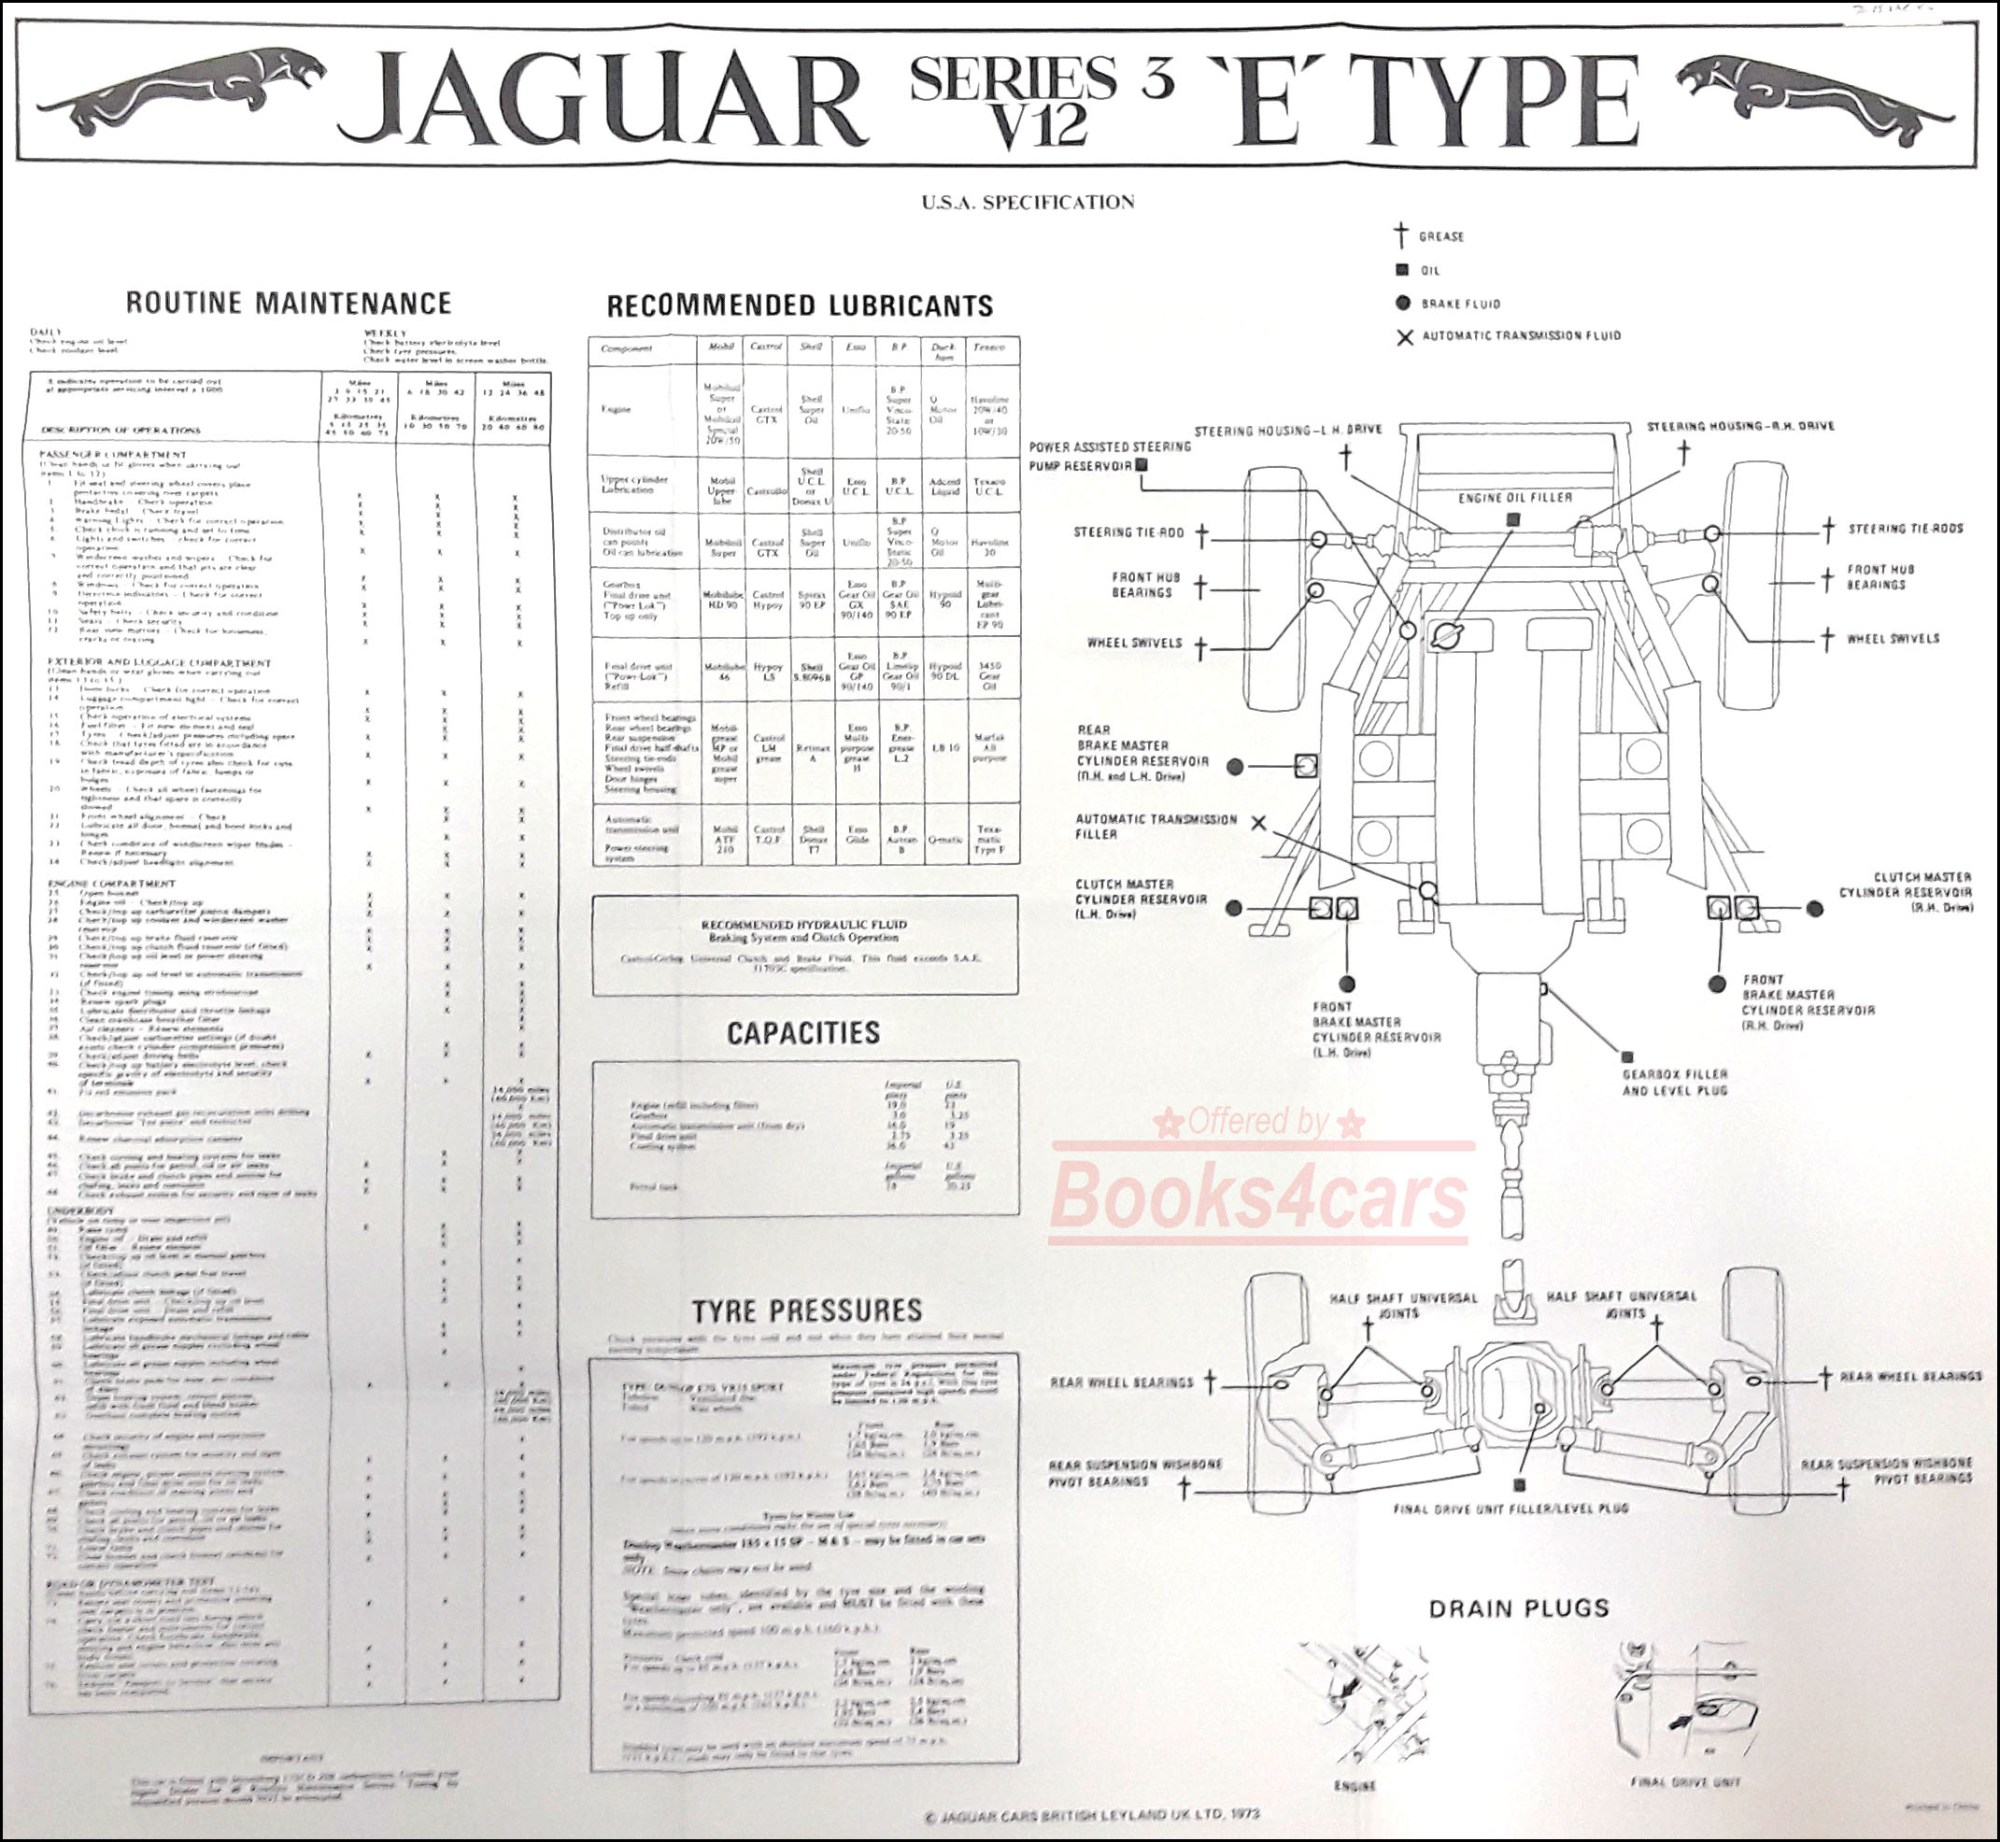 hight resolution of 1966 jaguar wiring diagram wiring diagram today 1966 jaguar wiring diagram wiring diagram details 1966 jaguar